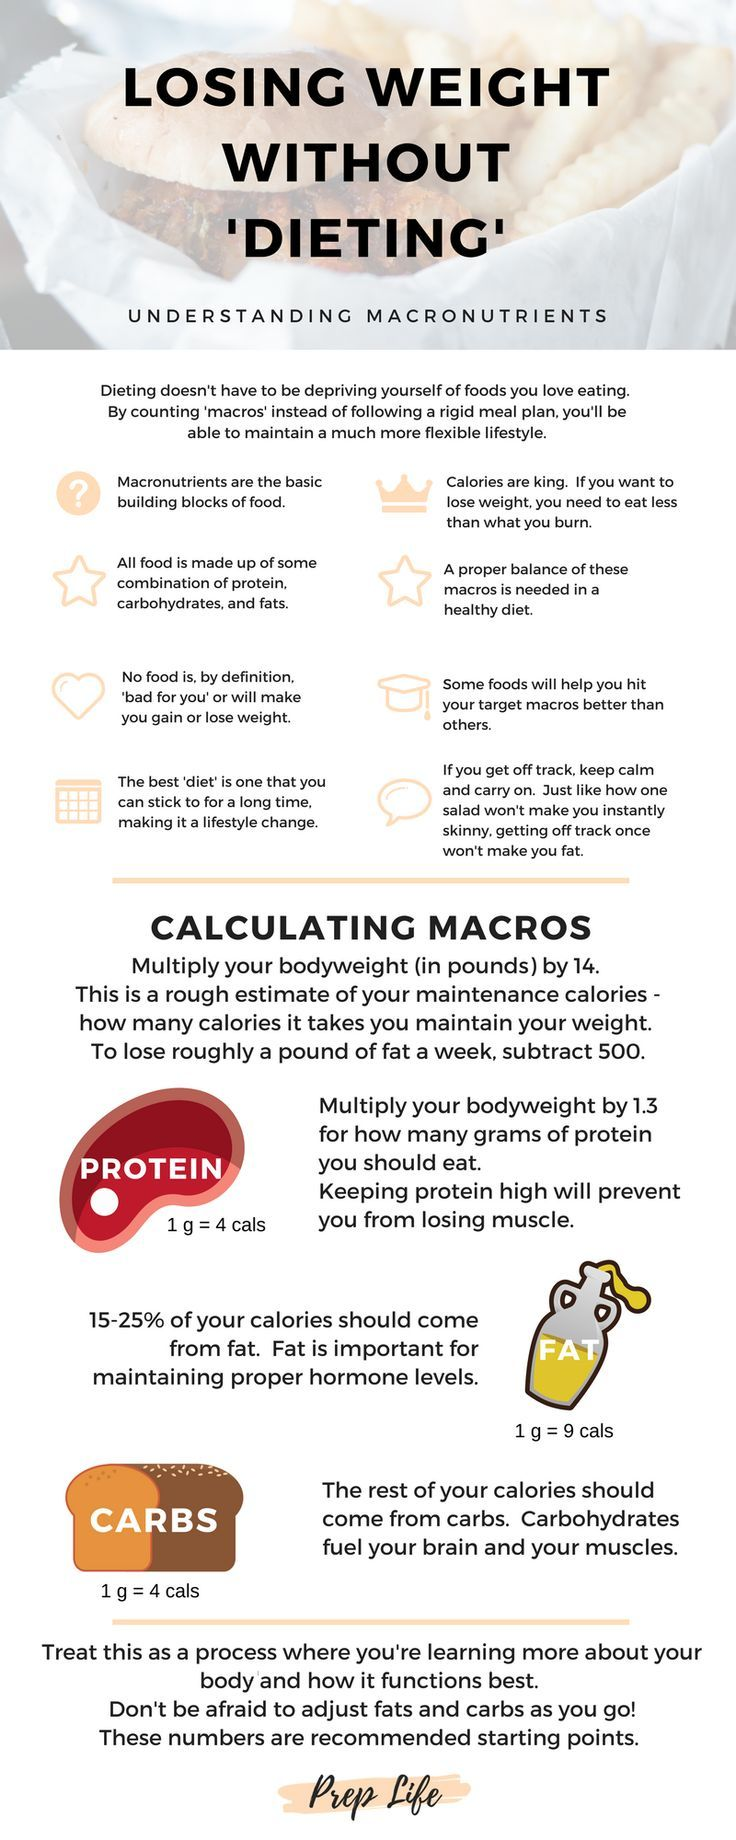 Losing weight without dieting infographic. How to lose weight eating the foods y…